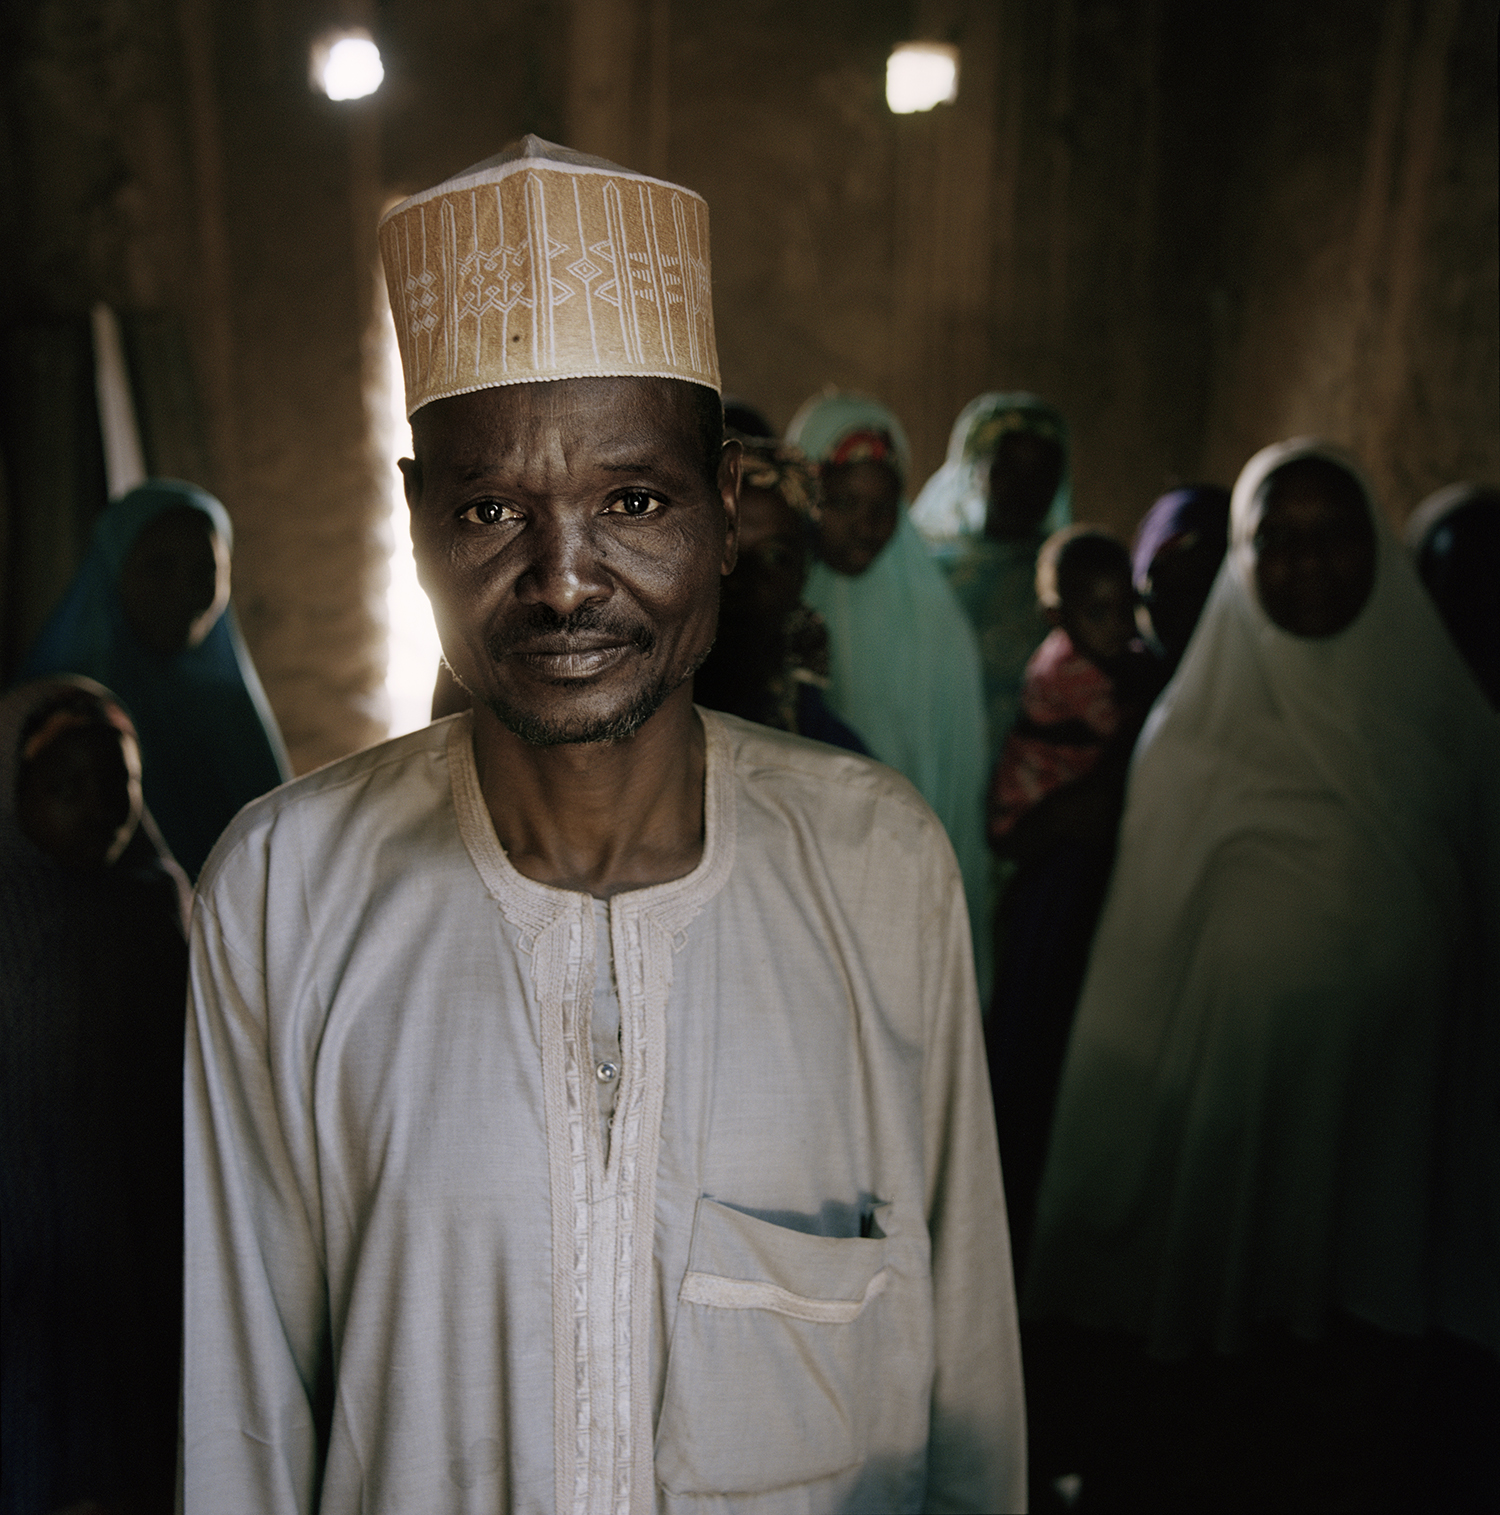 Child_Marriage_Niger_013.jpg